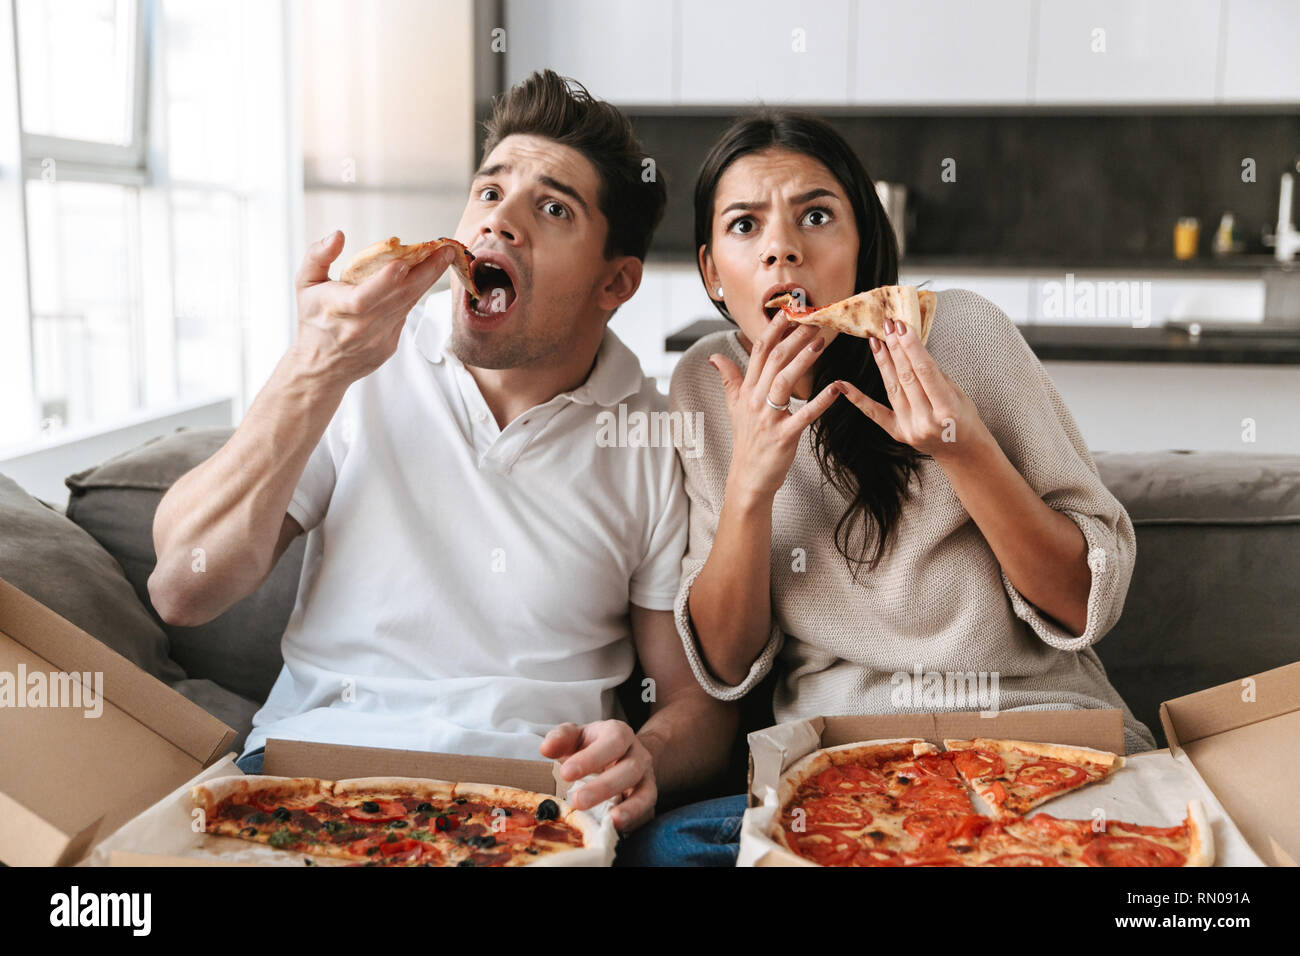 Cheerful young couple sitting on a couch at home, eating pizza, watching TV - Stock Image